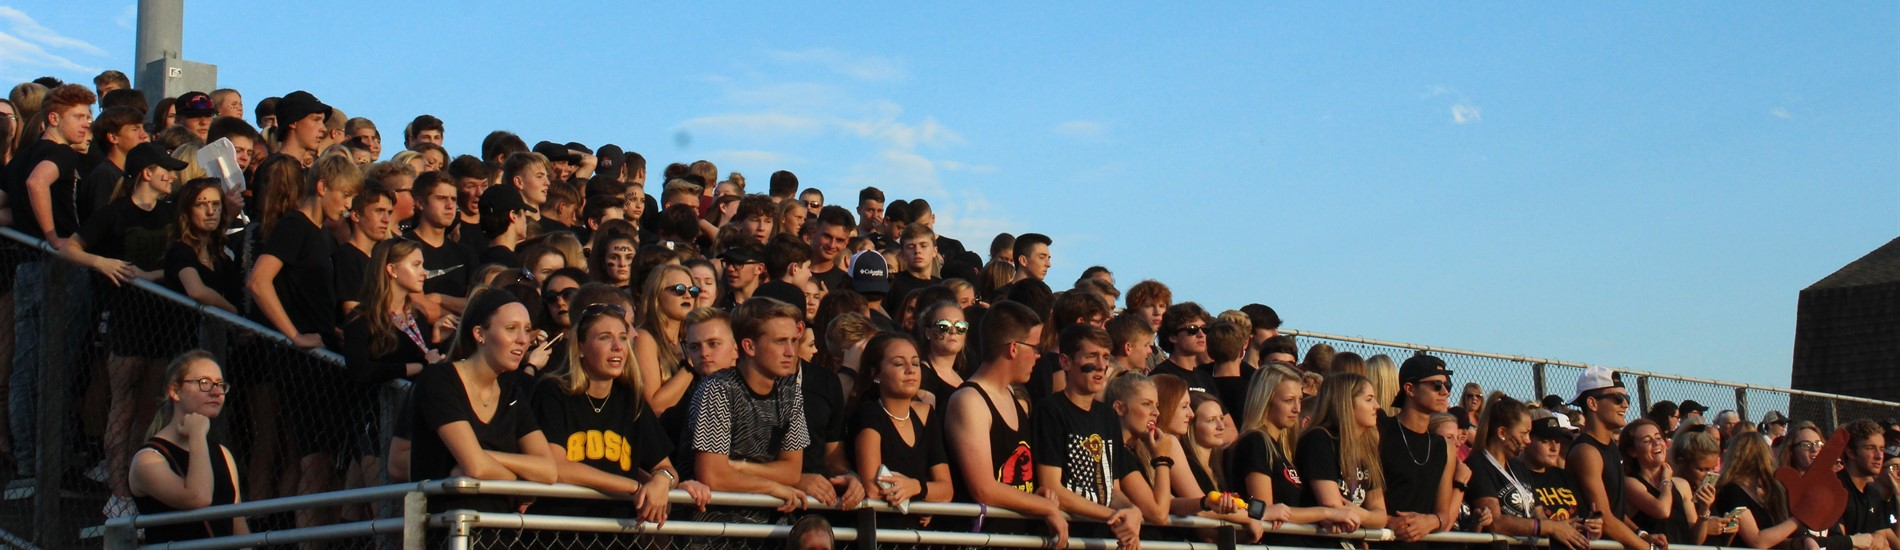 The Herd student body at the homecoming football game.